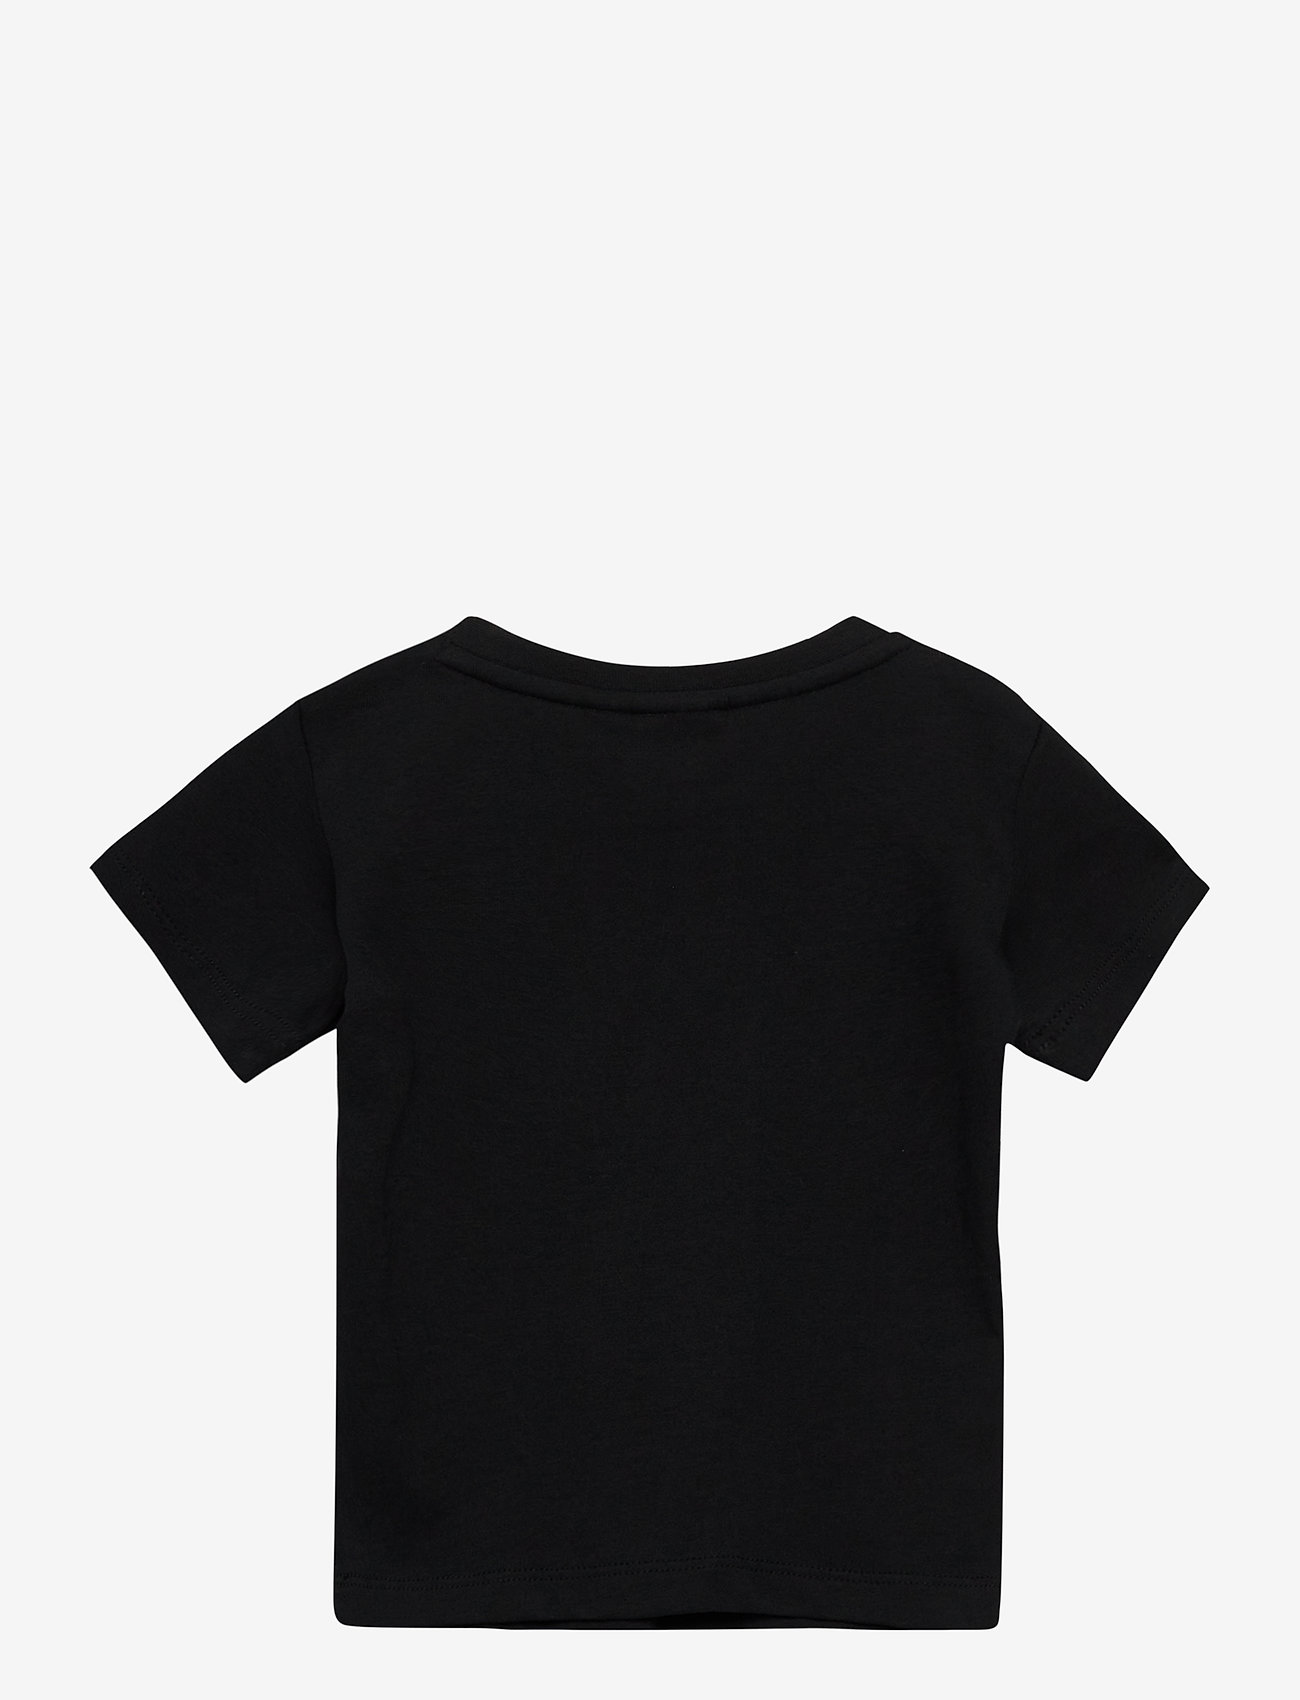 Goofy Tee (Black) (14.96 €) - adidas Originals 7EaSN